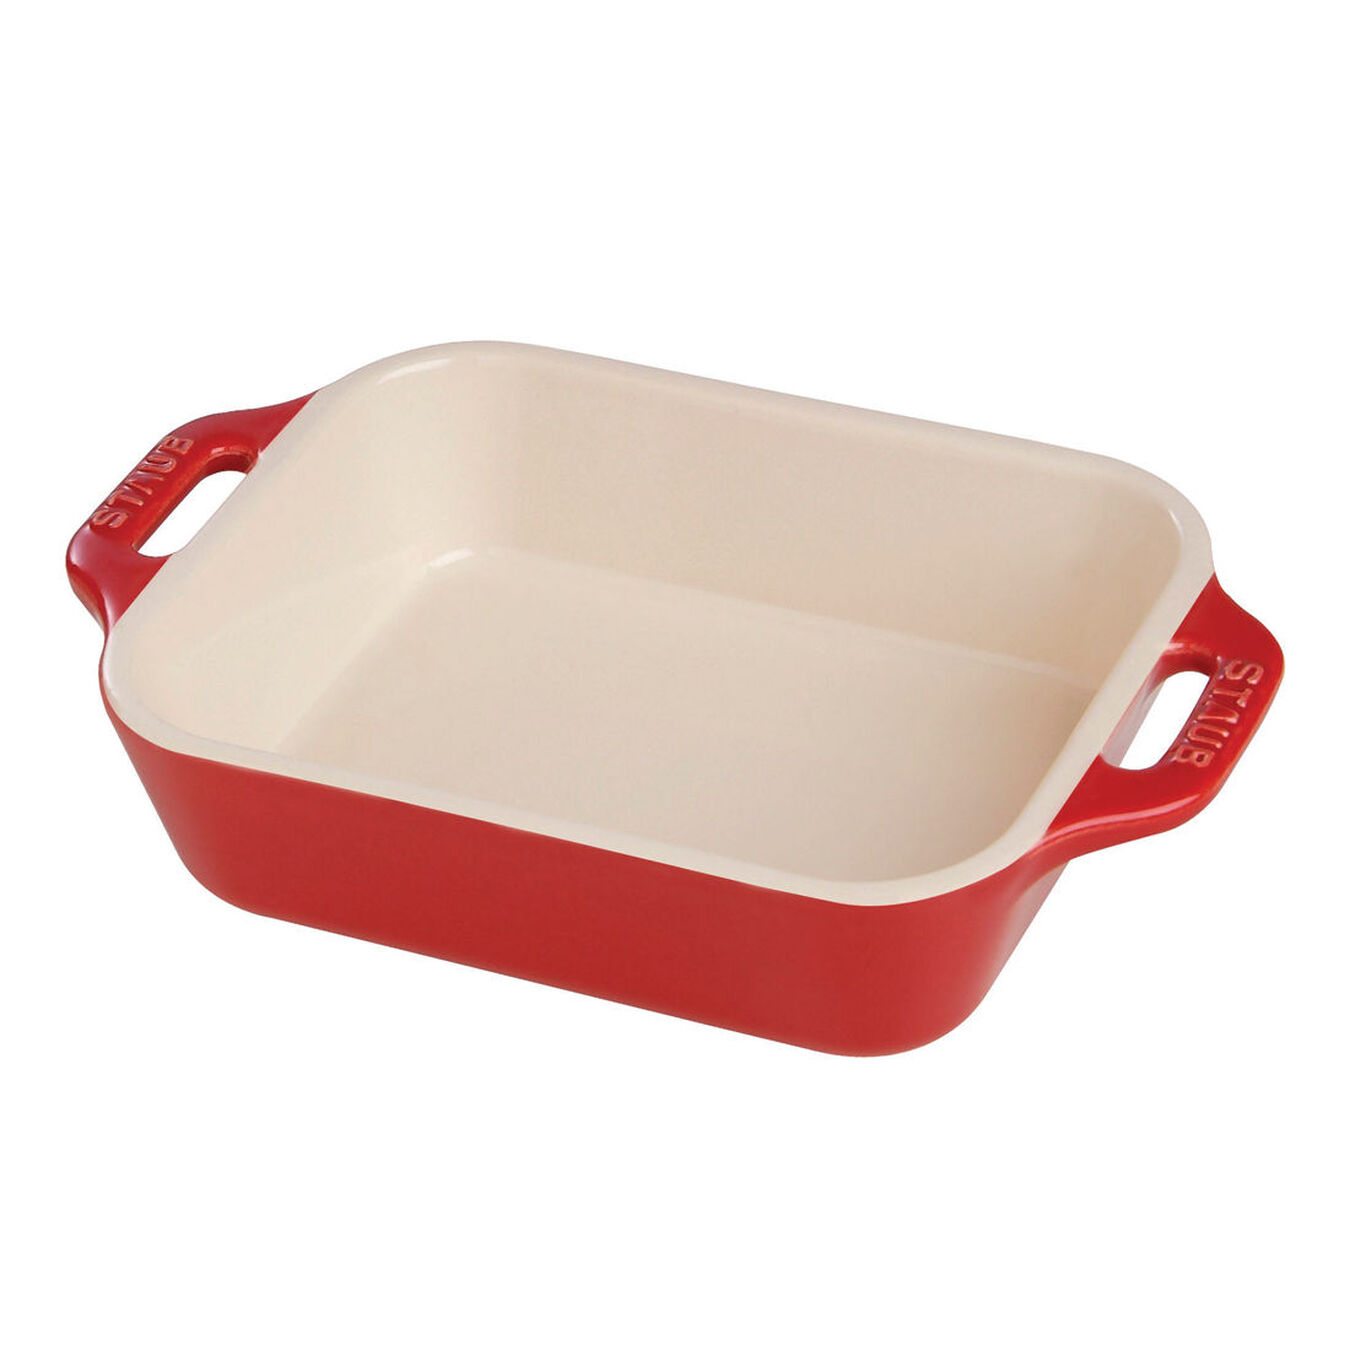 13-inch x 9-inch Rectangular Baking Dish - Cherry,,large 1